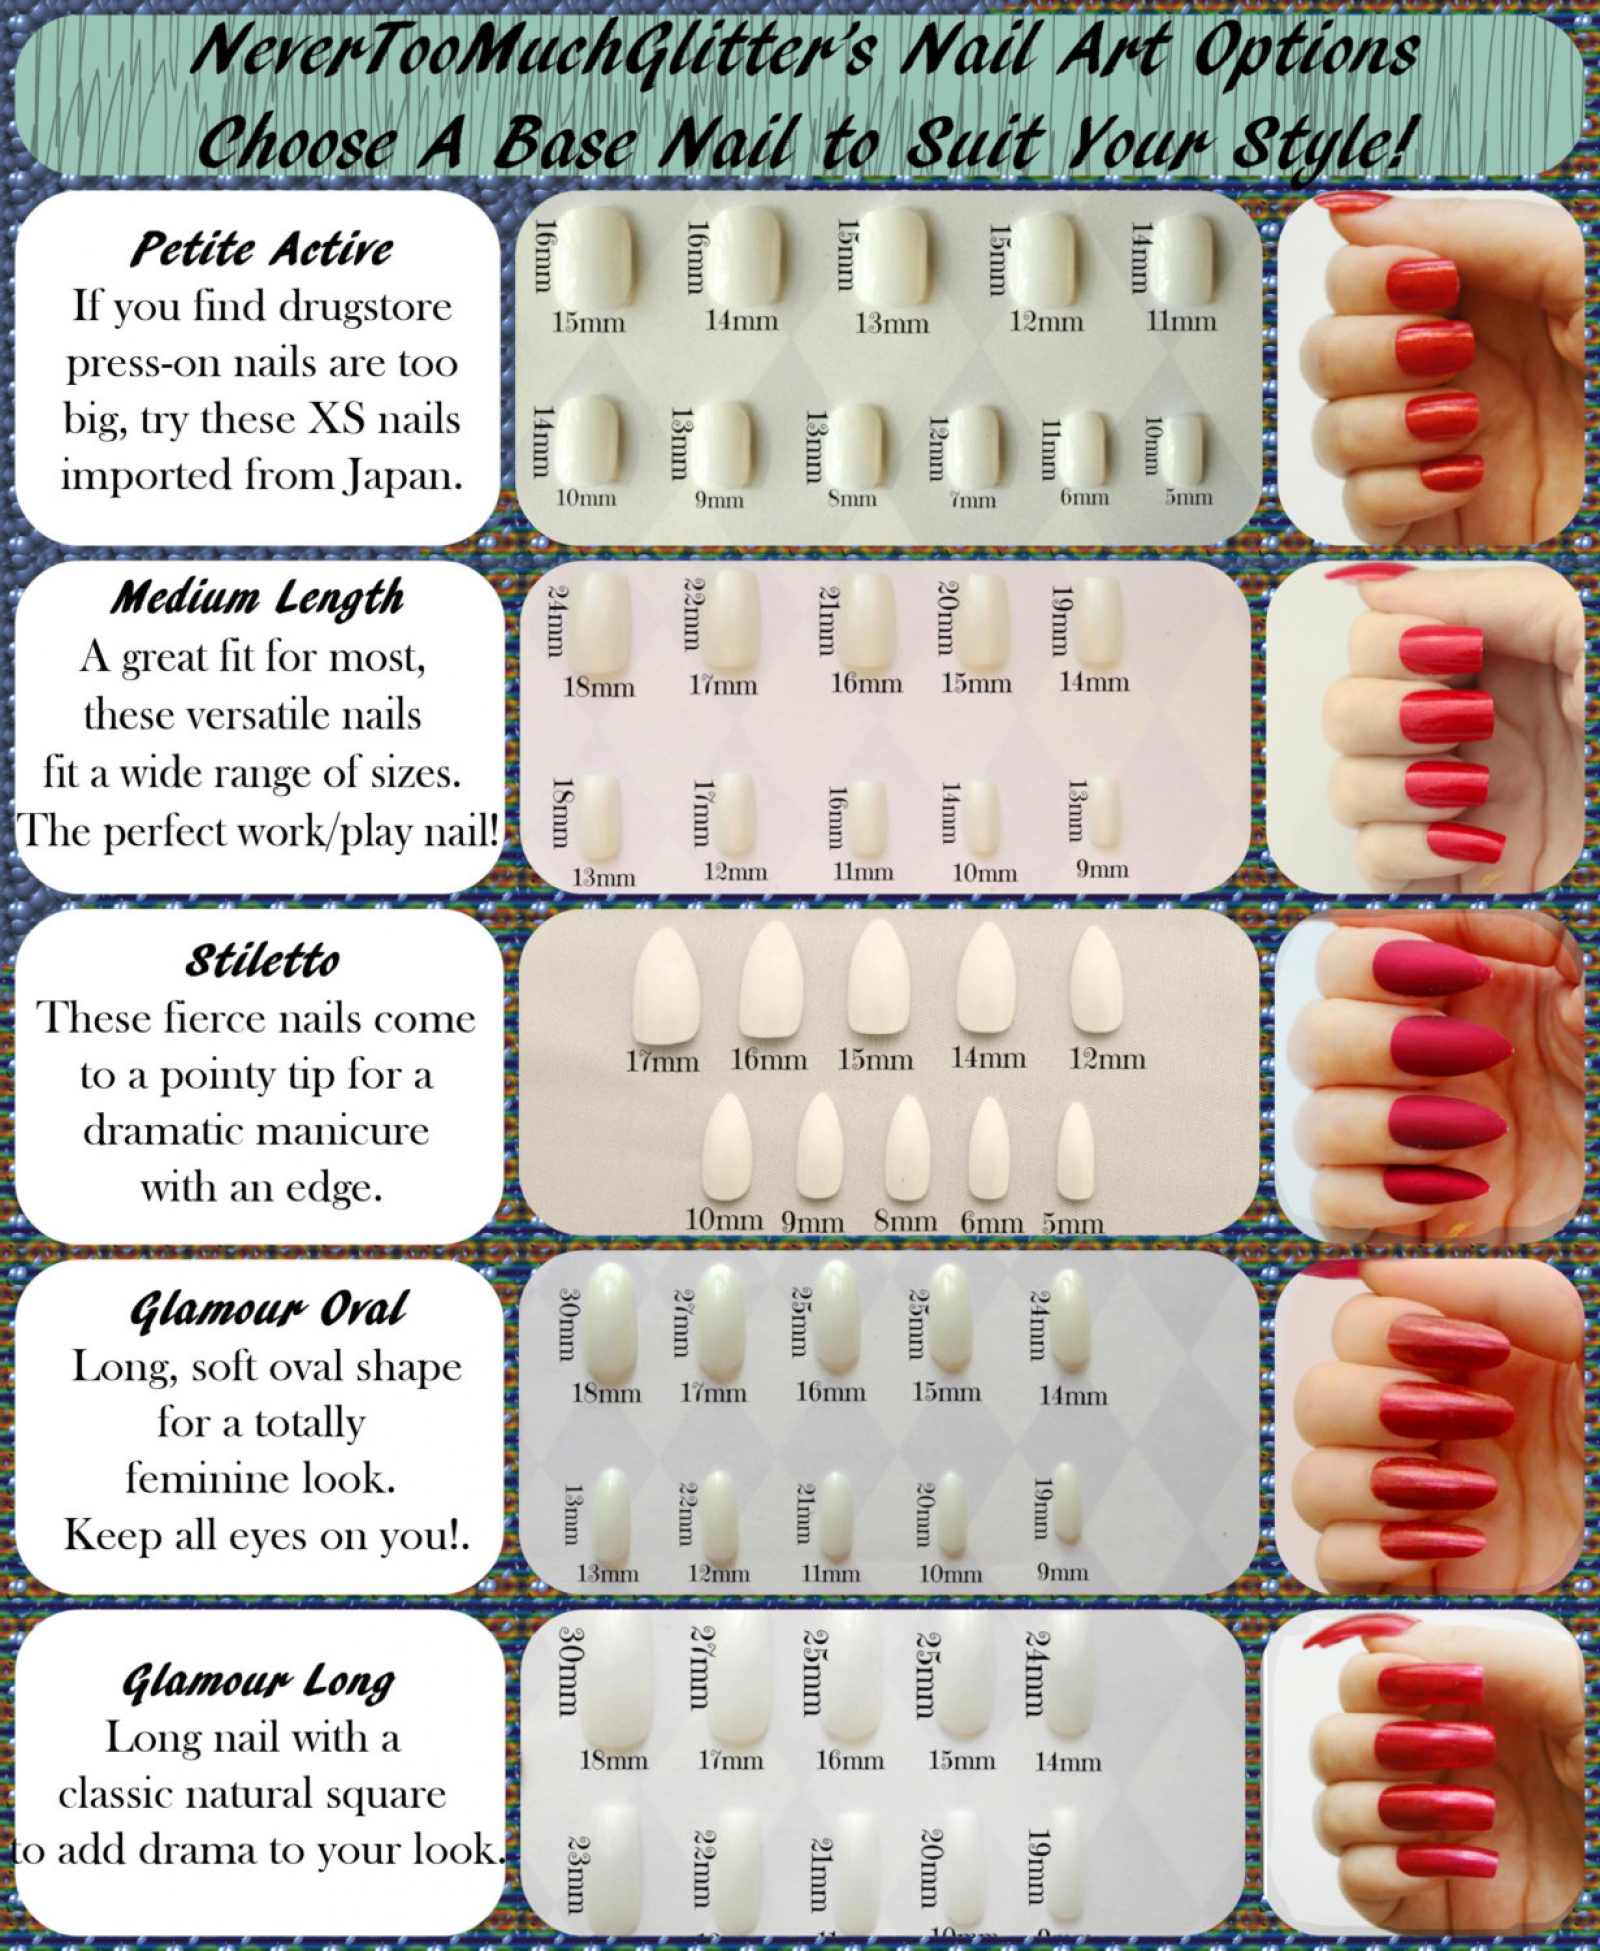 DIY Nail Art Kit In Your Choice of Sizes | Nails By NeverTooMuchGlitter